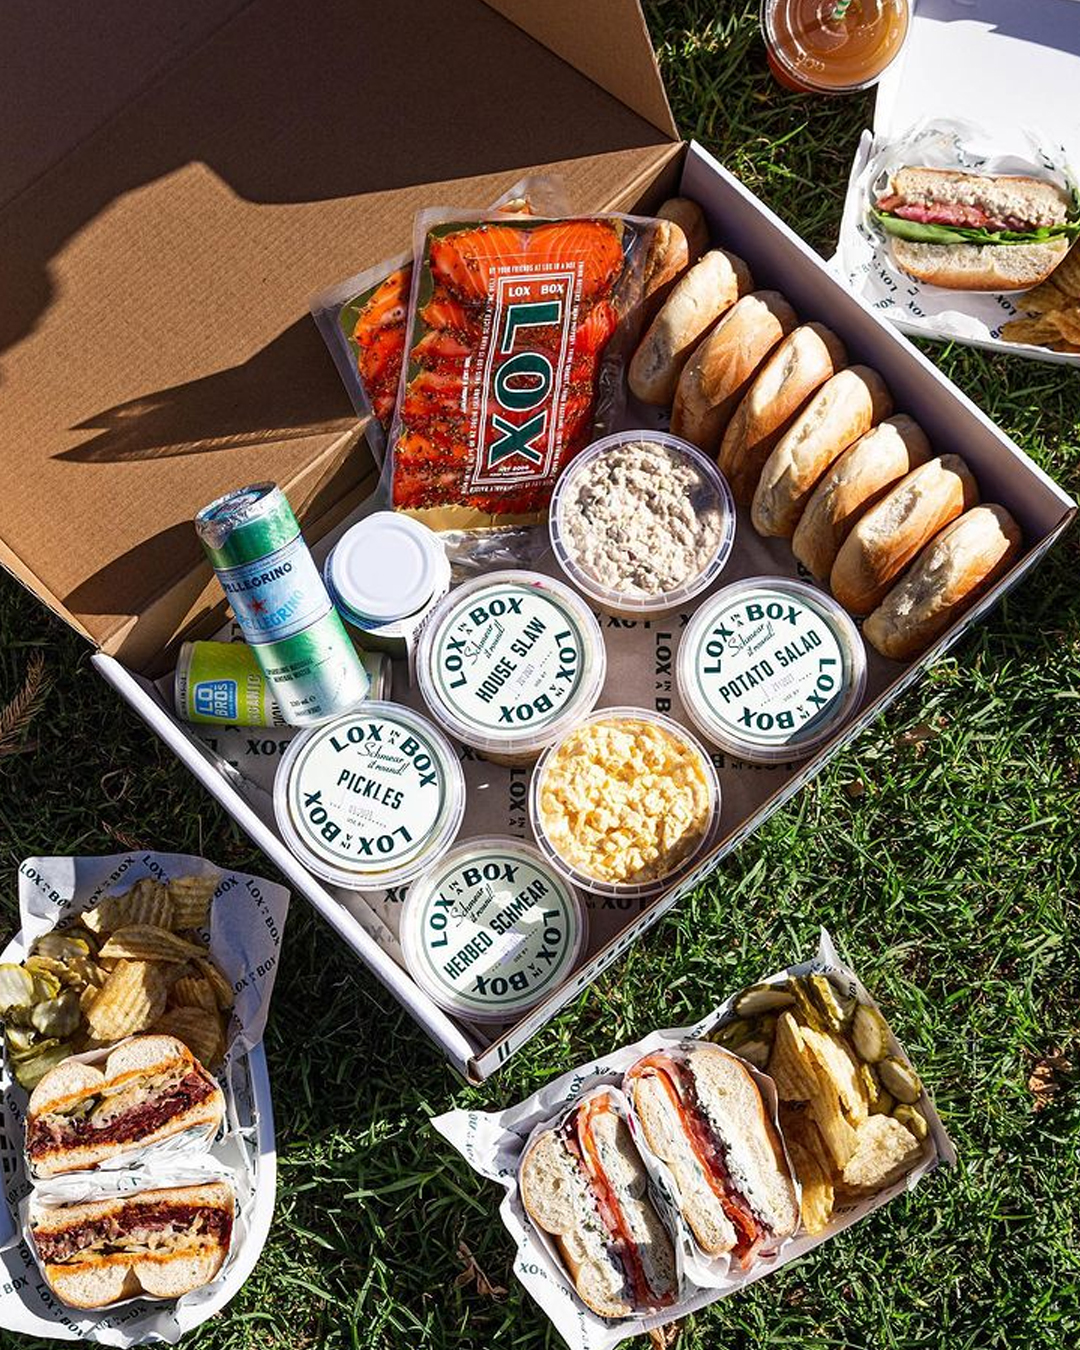 deli box full with bagels